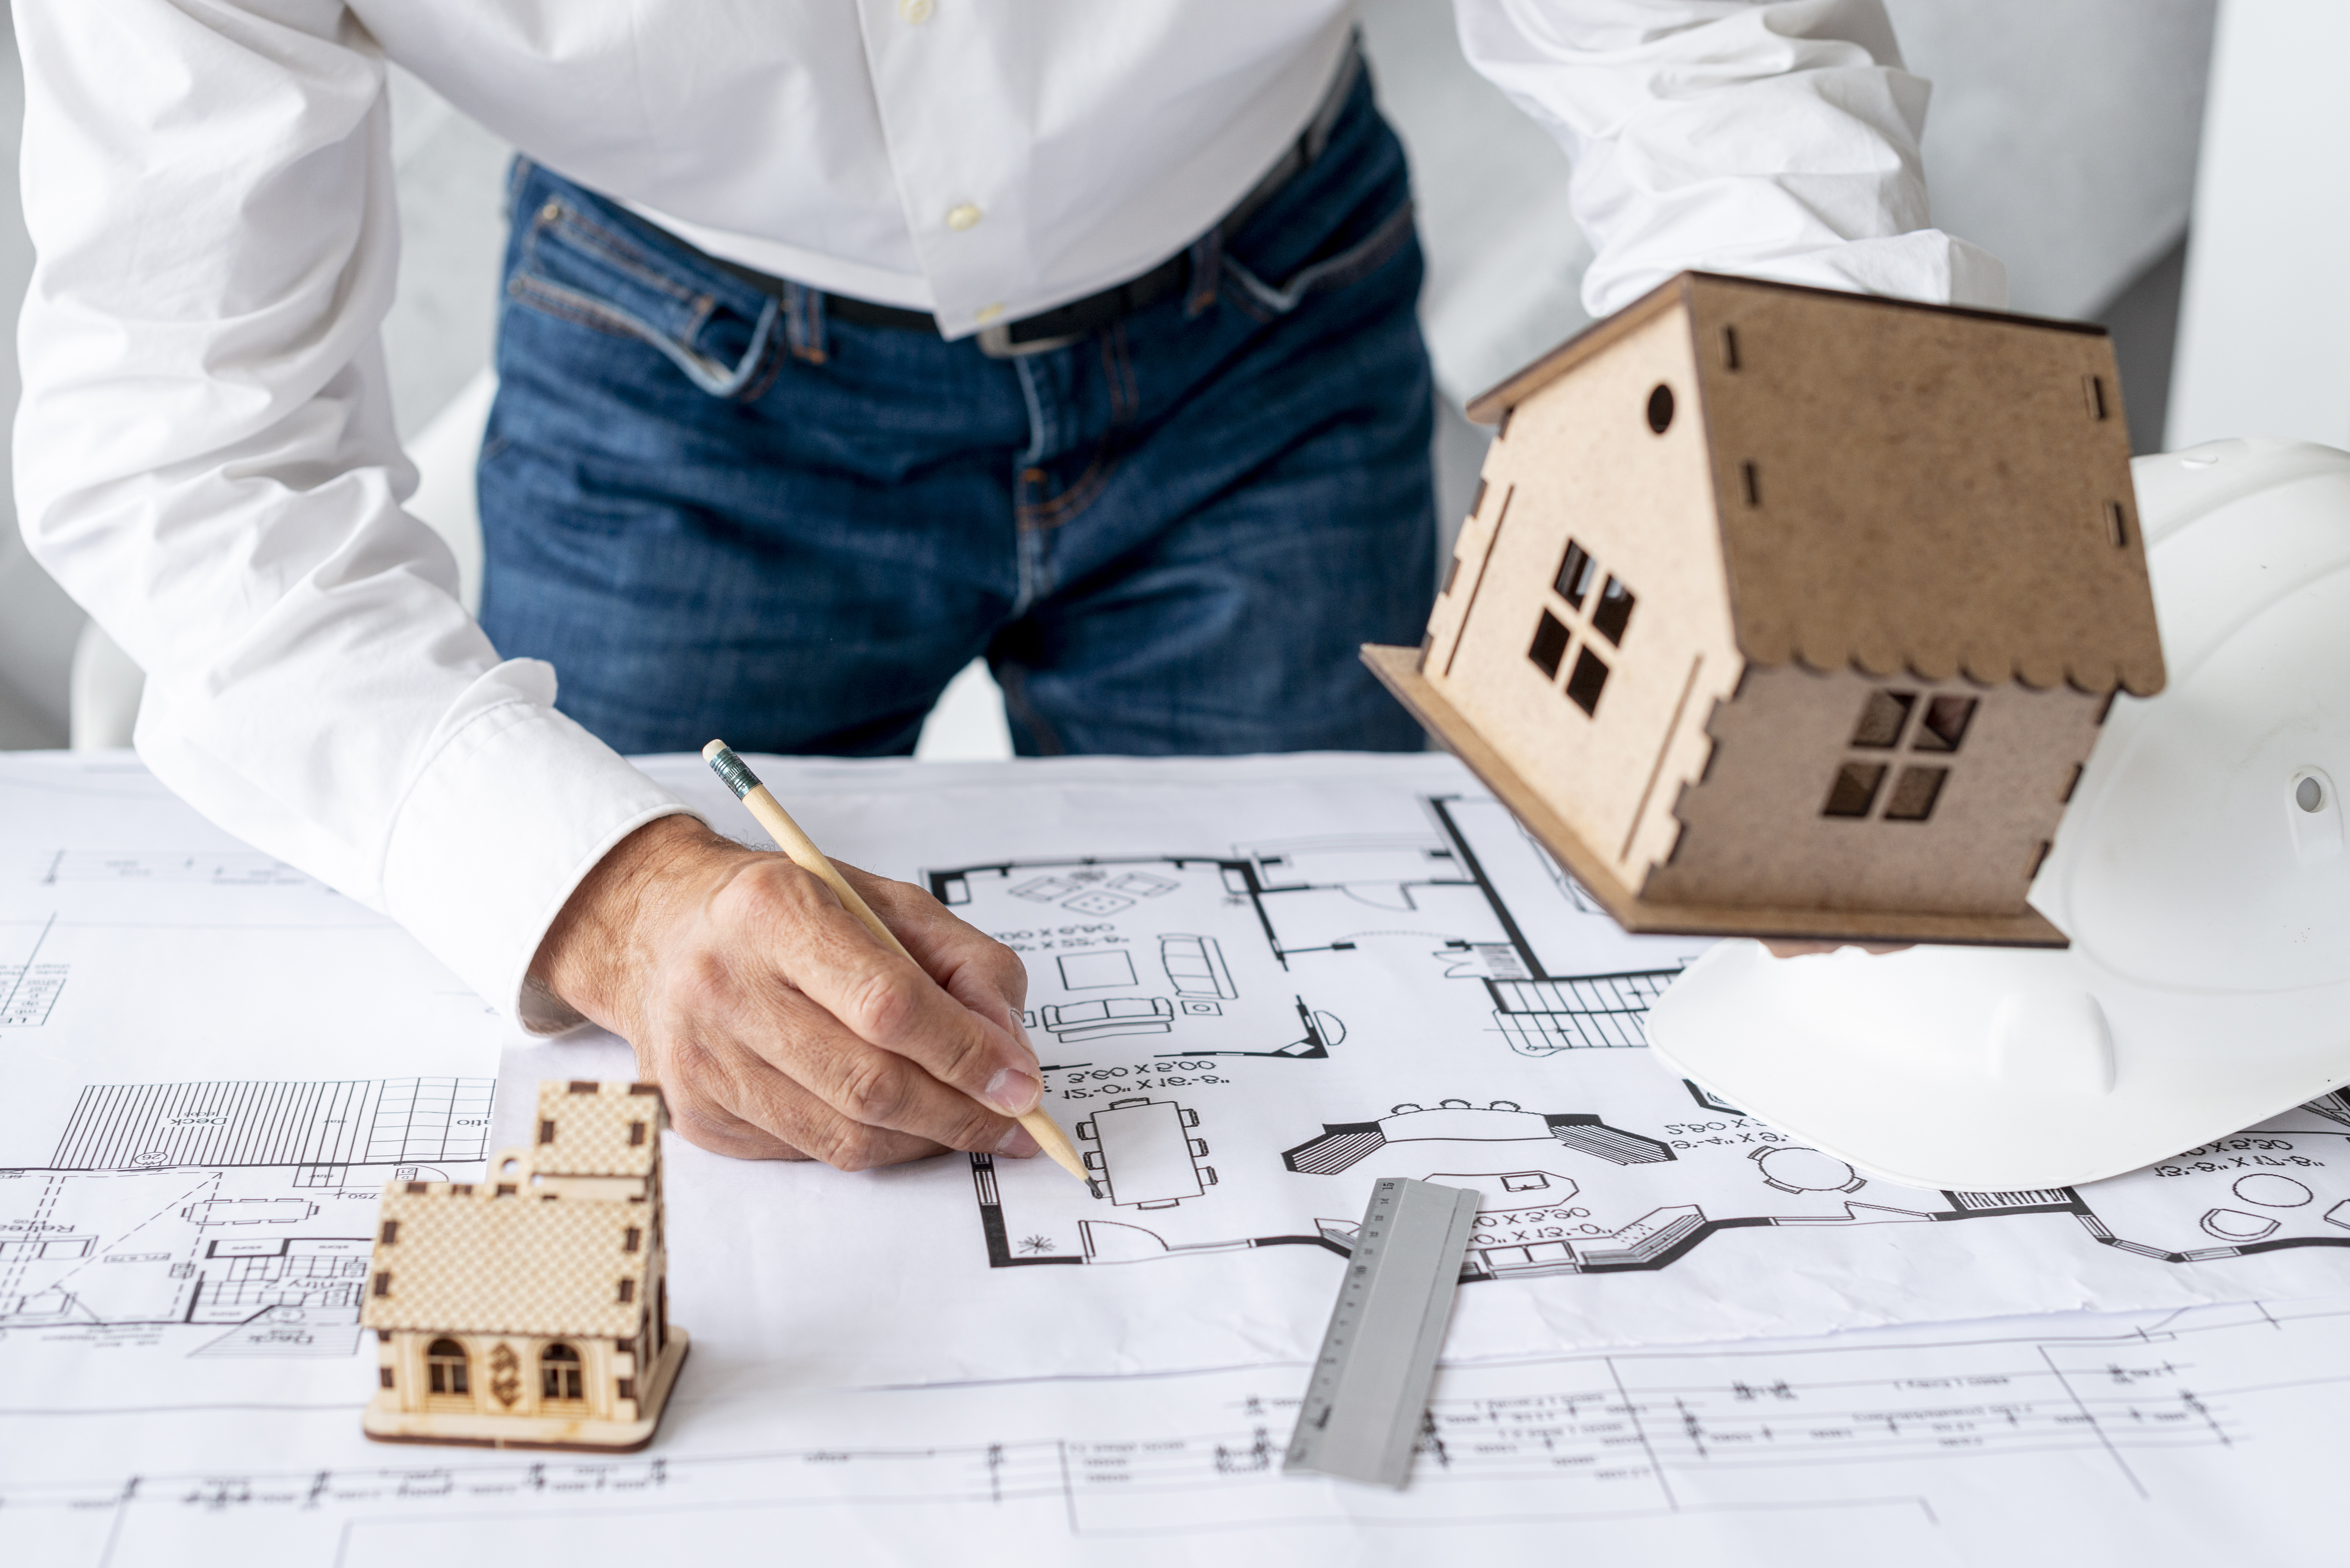 architect-showing-miniature-projects.jpg